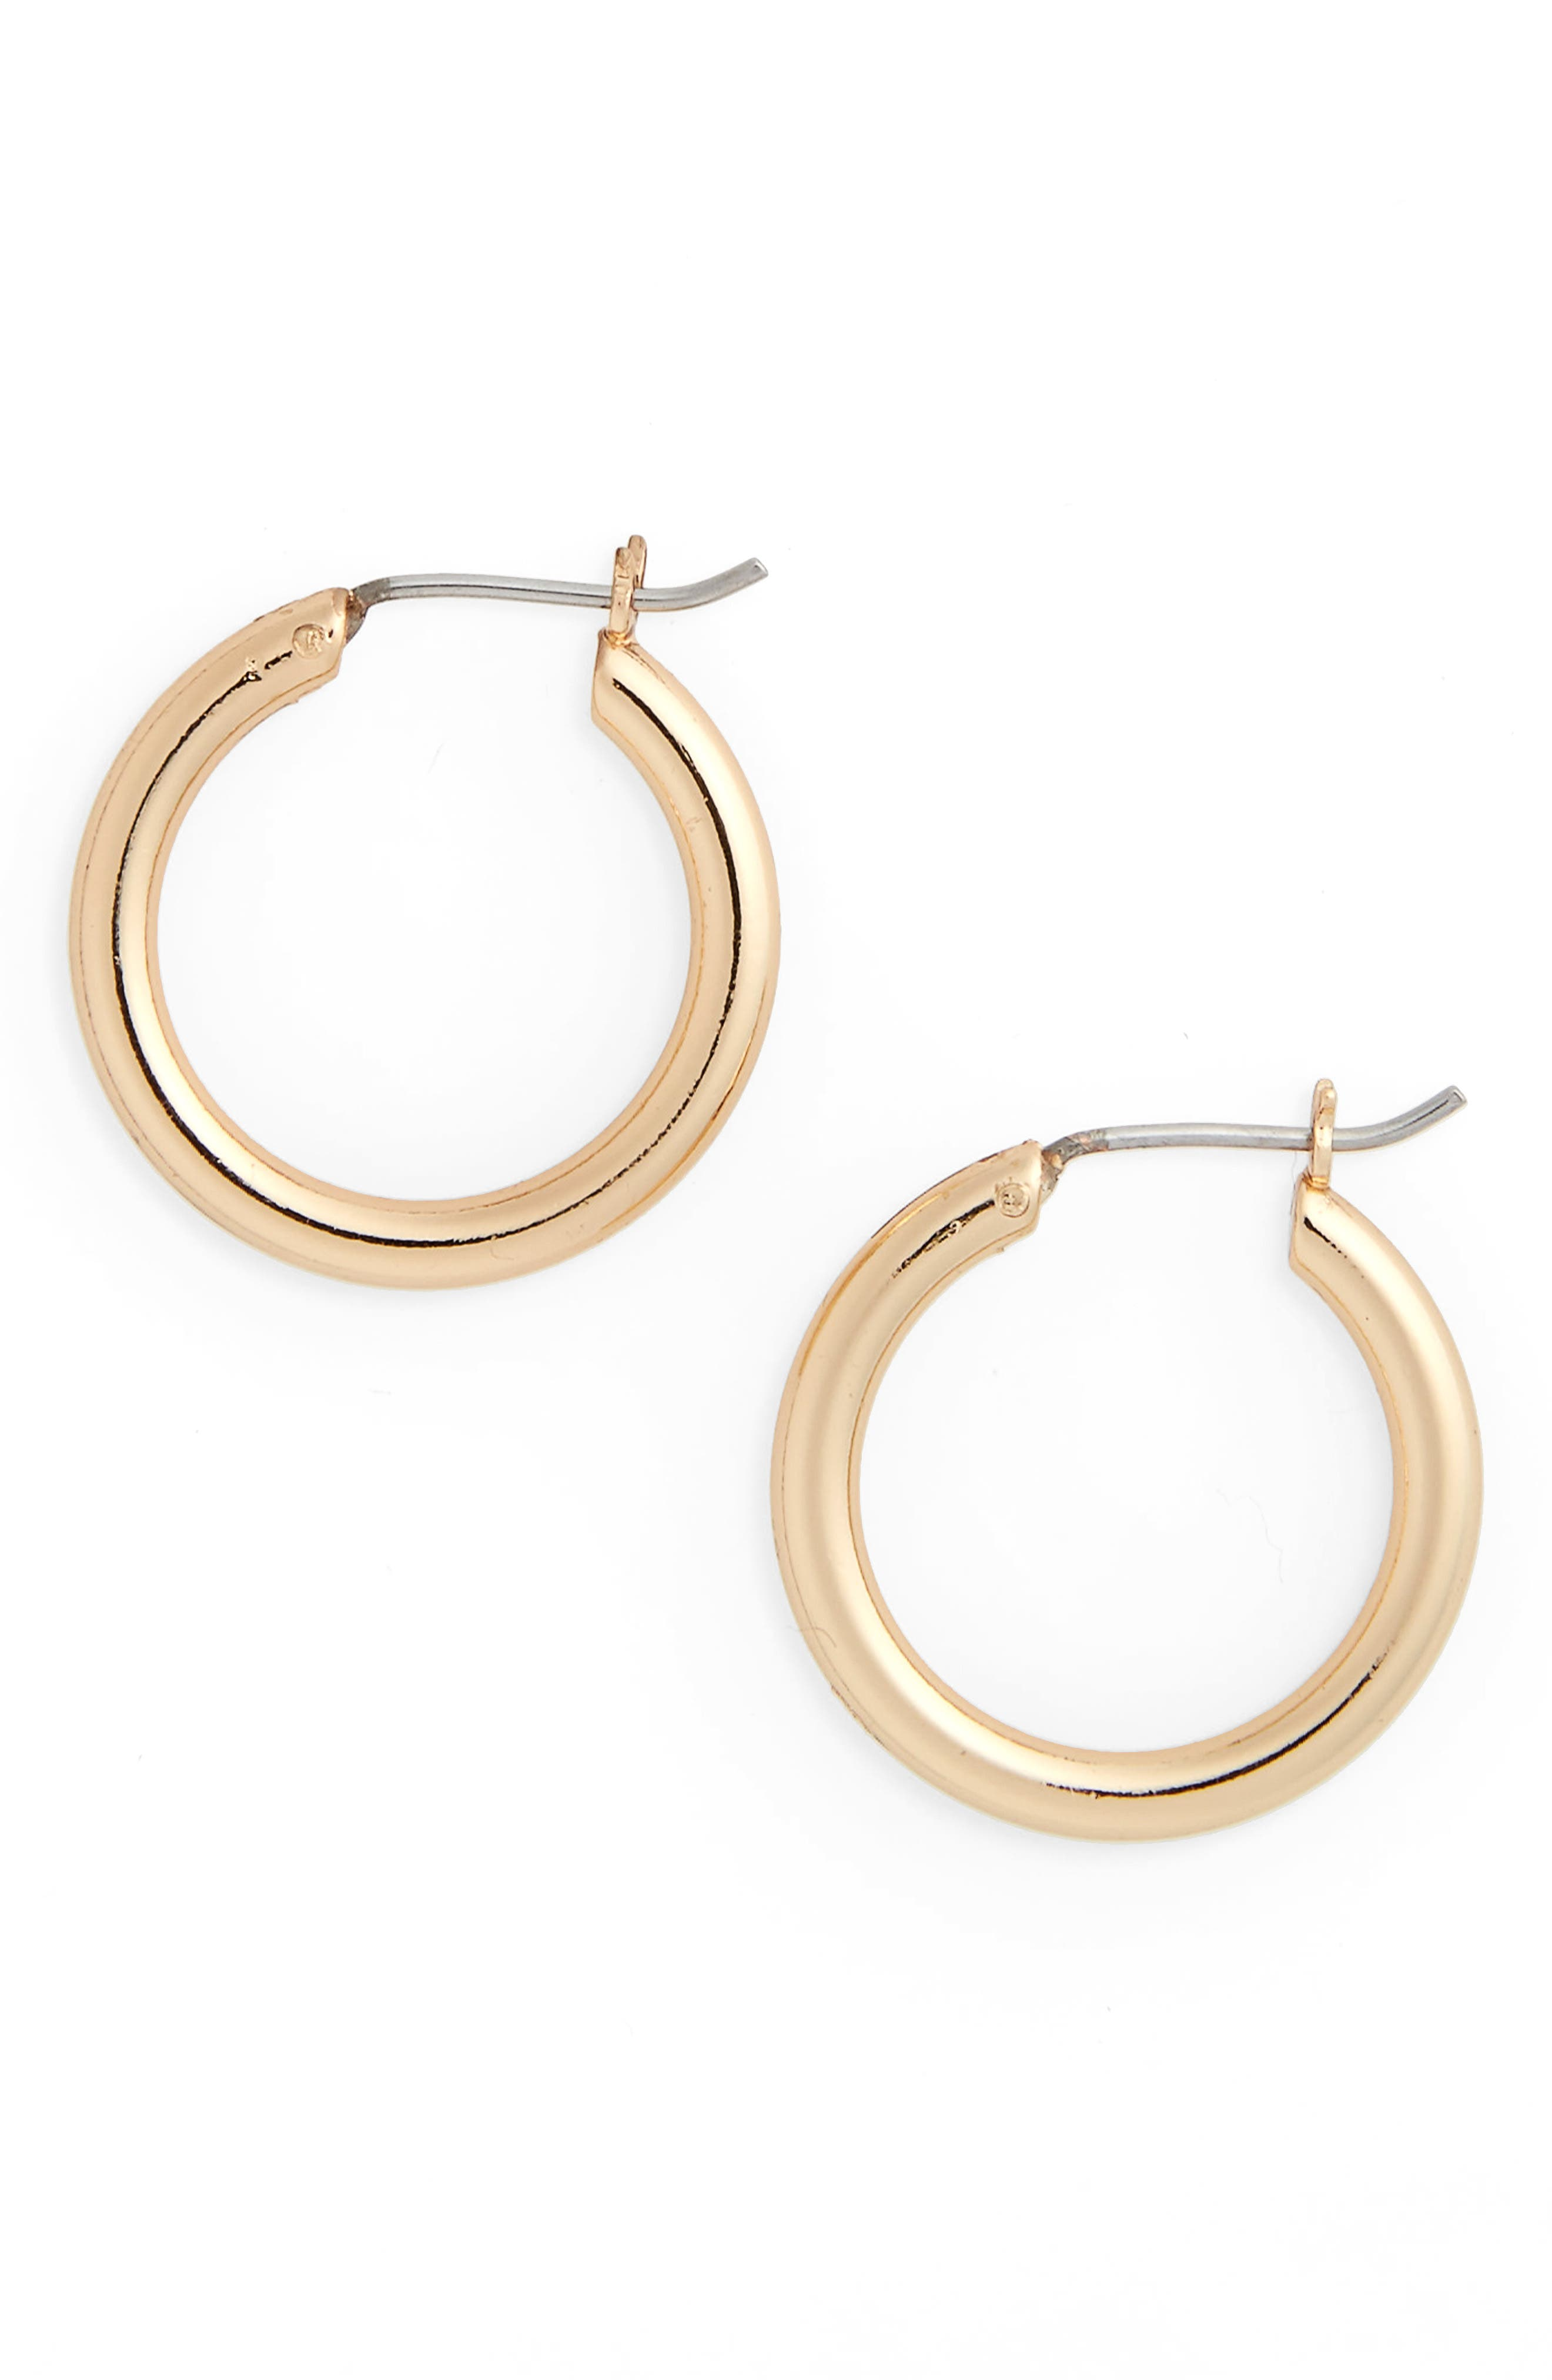 Small Endless Hoop Earrings,                             Main thumbnail 1, color,                             Gold